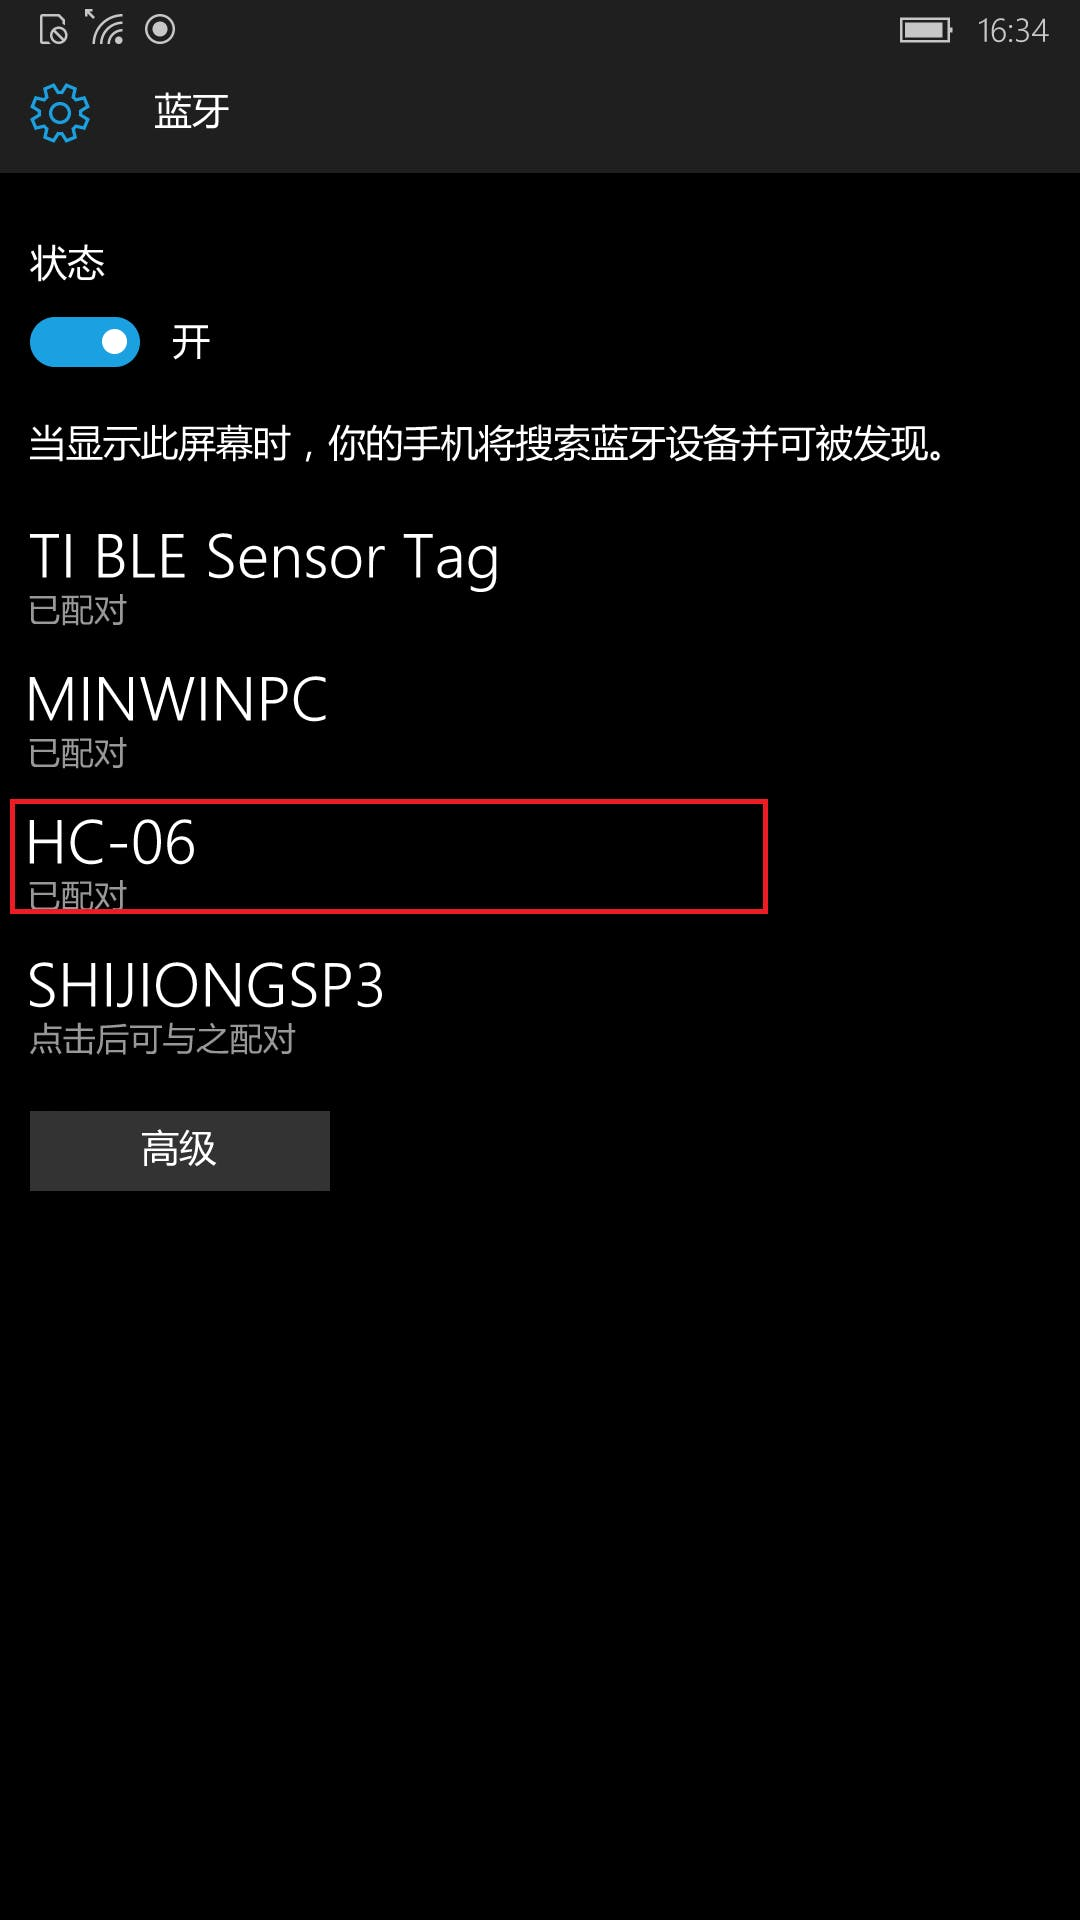 Fig. 3: Bluetooth Pairing for Windows 10 Mobile